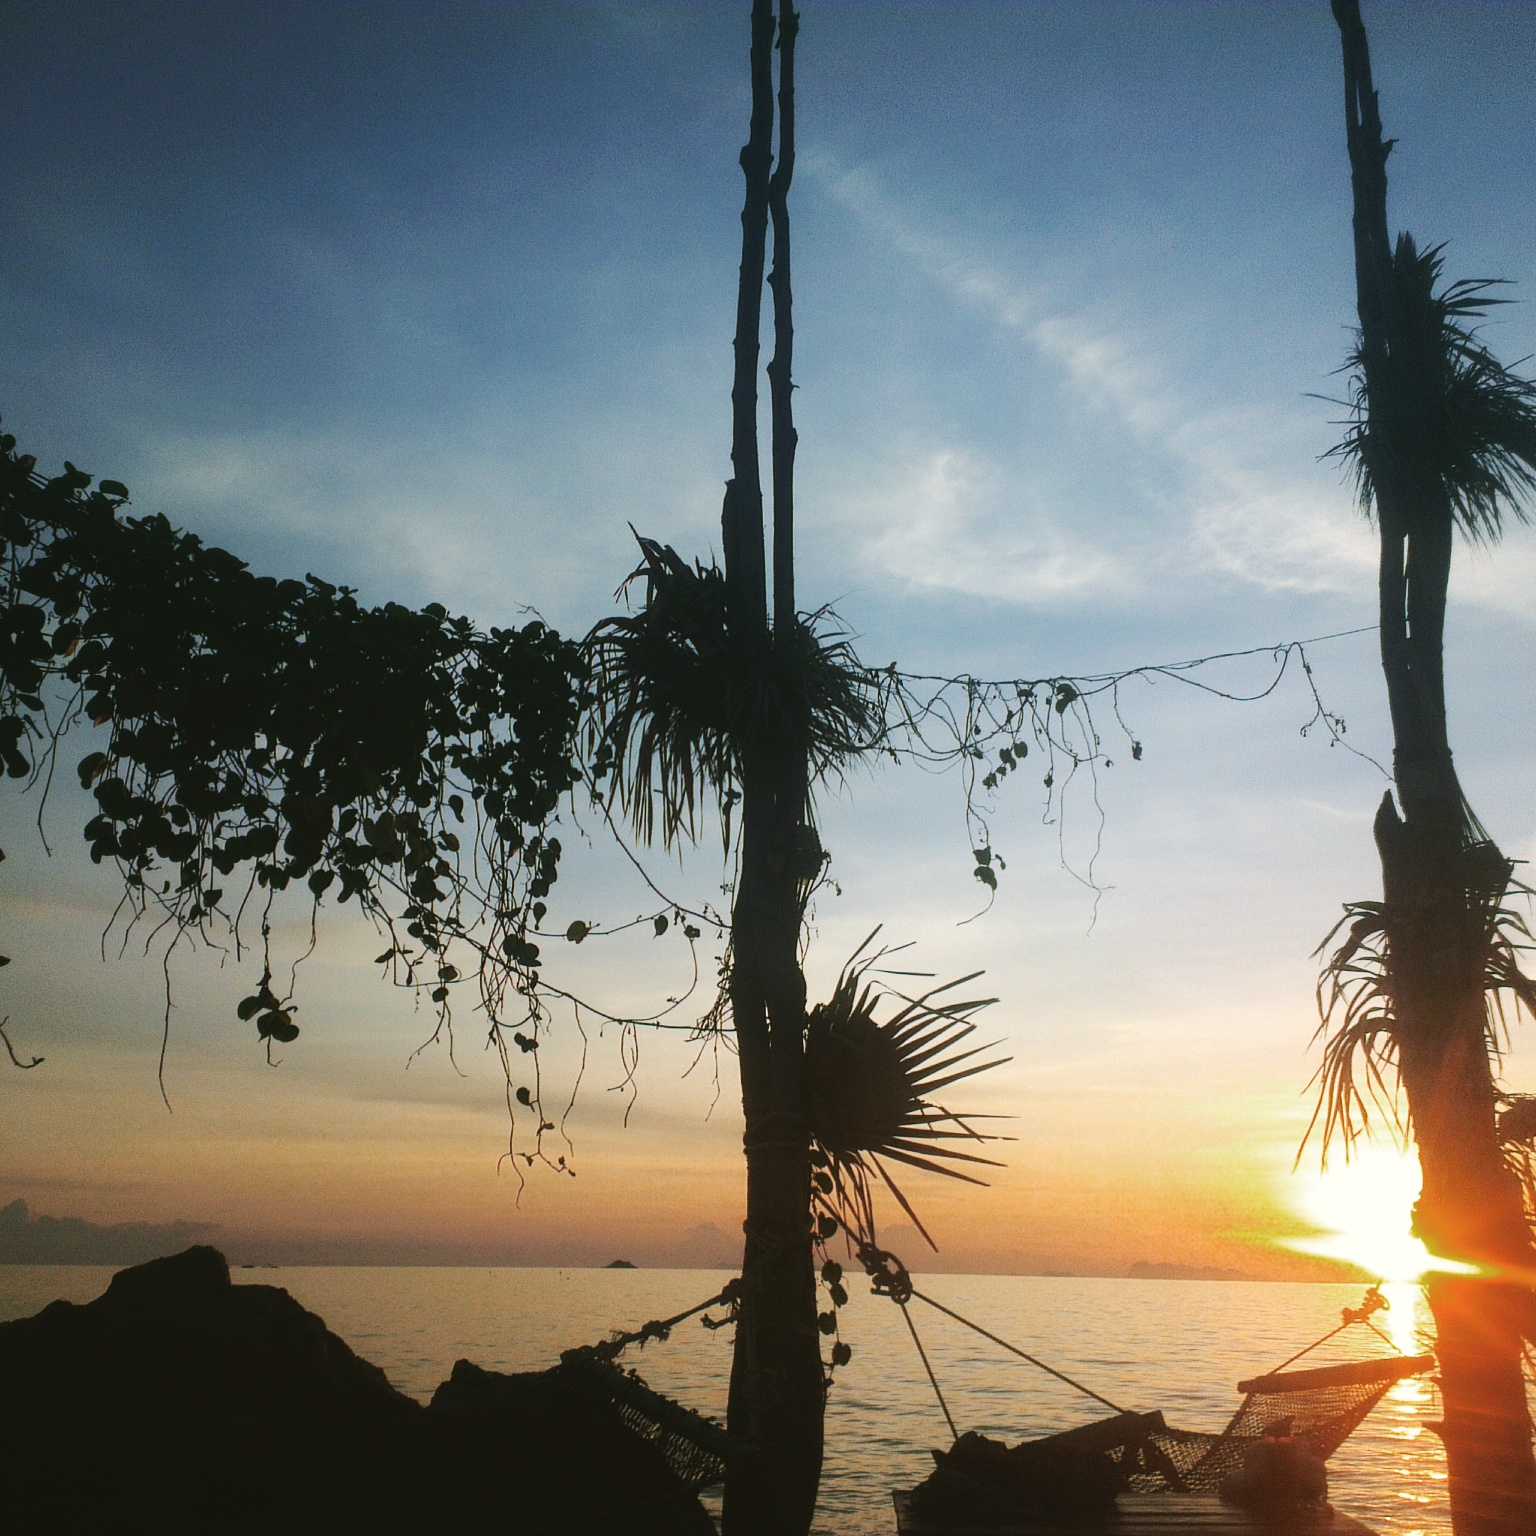 Best Sunset Spot - Koh Raham - Haad Son Resort - Koh Phangan